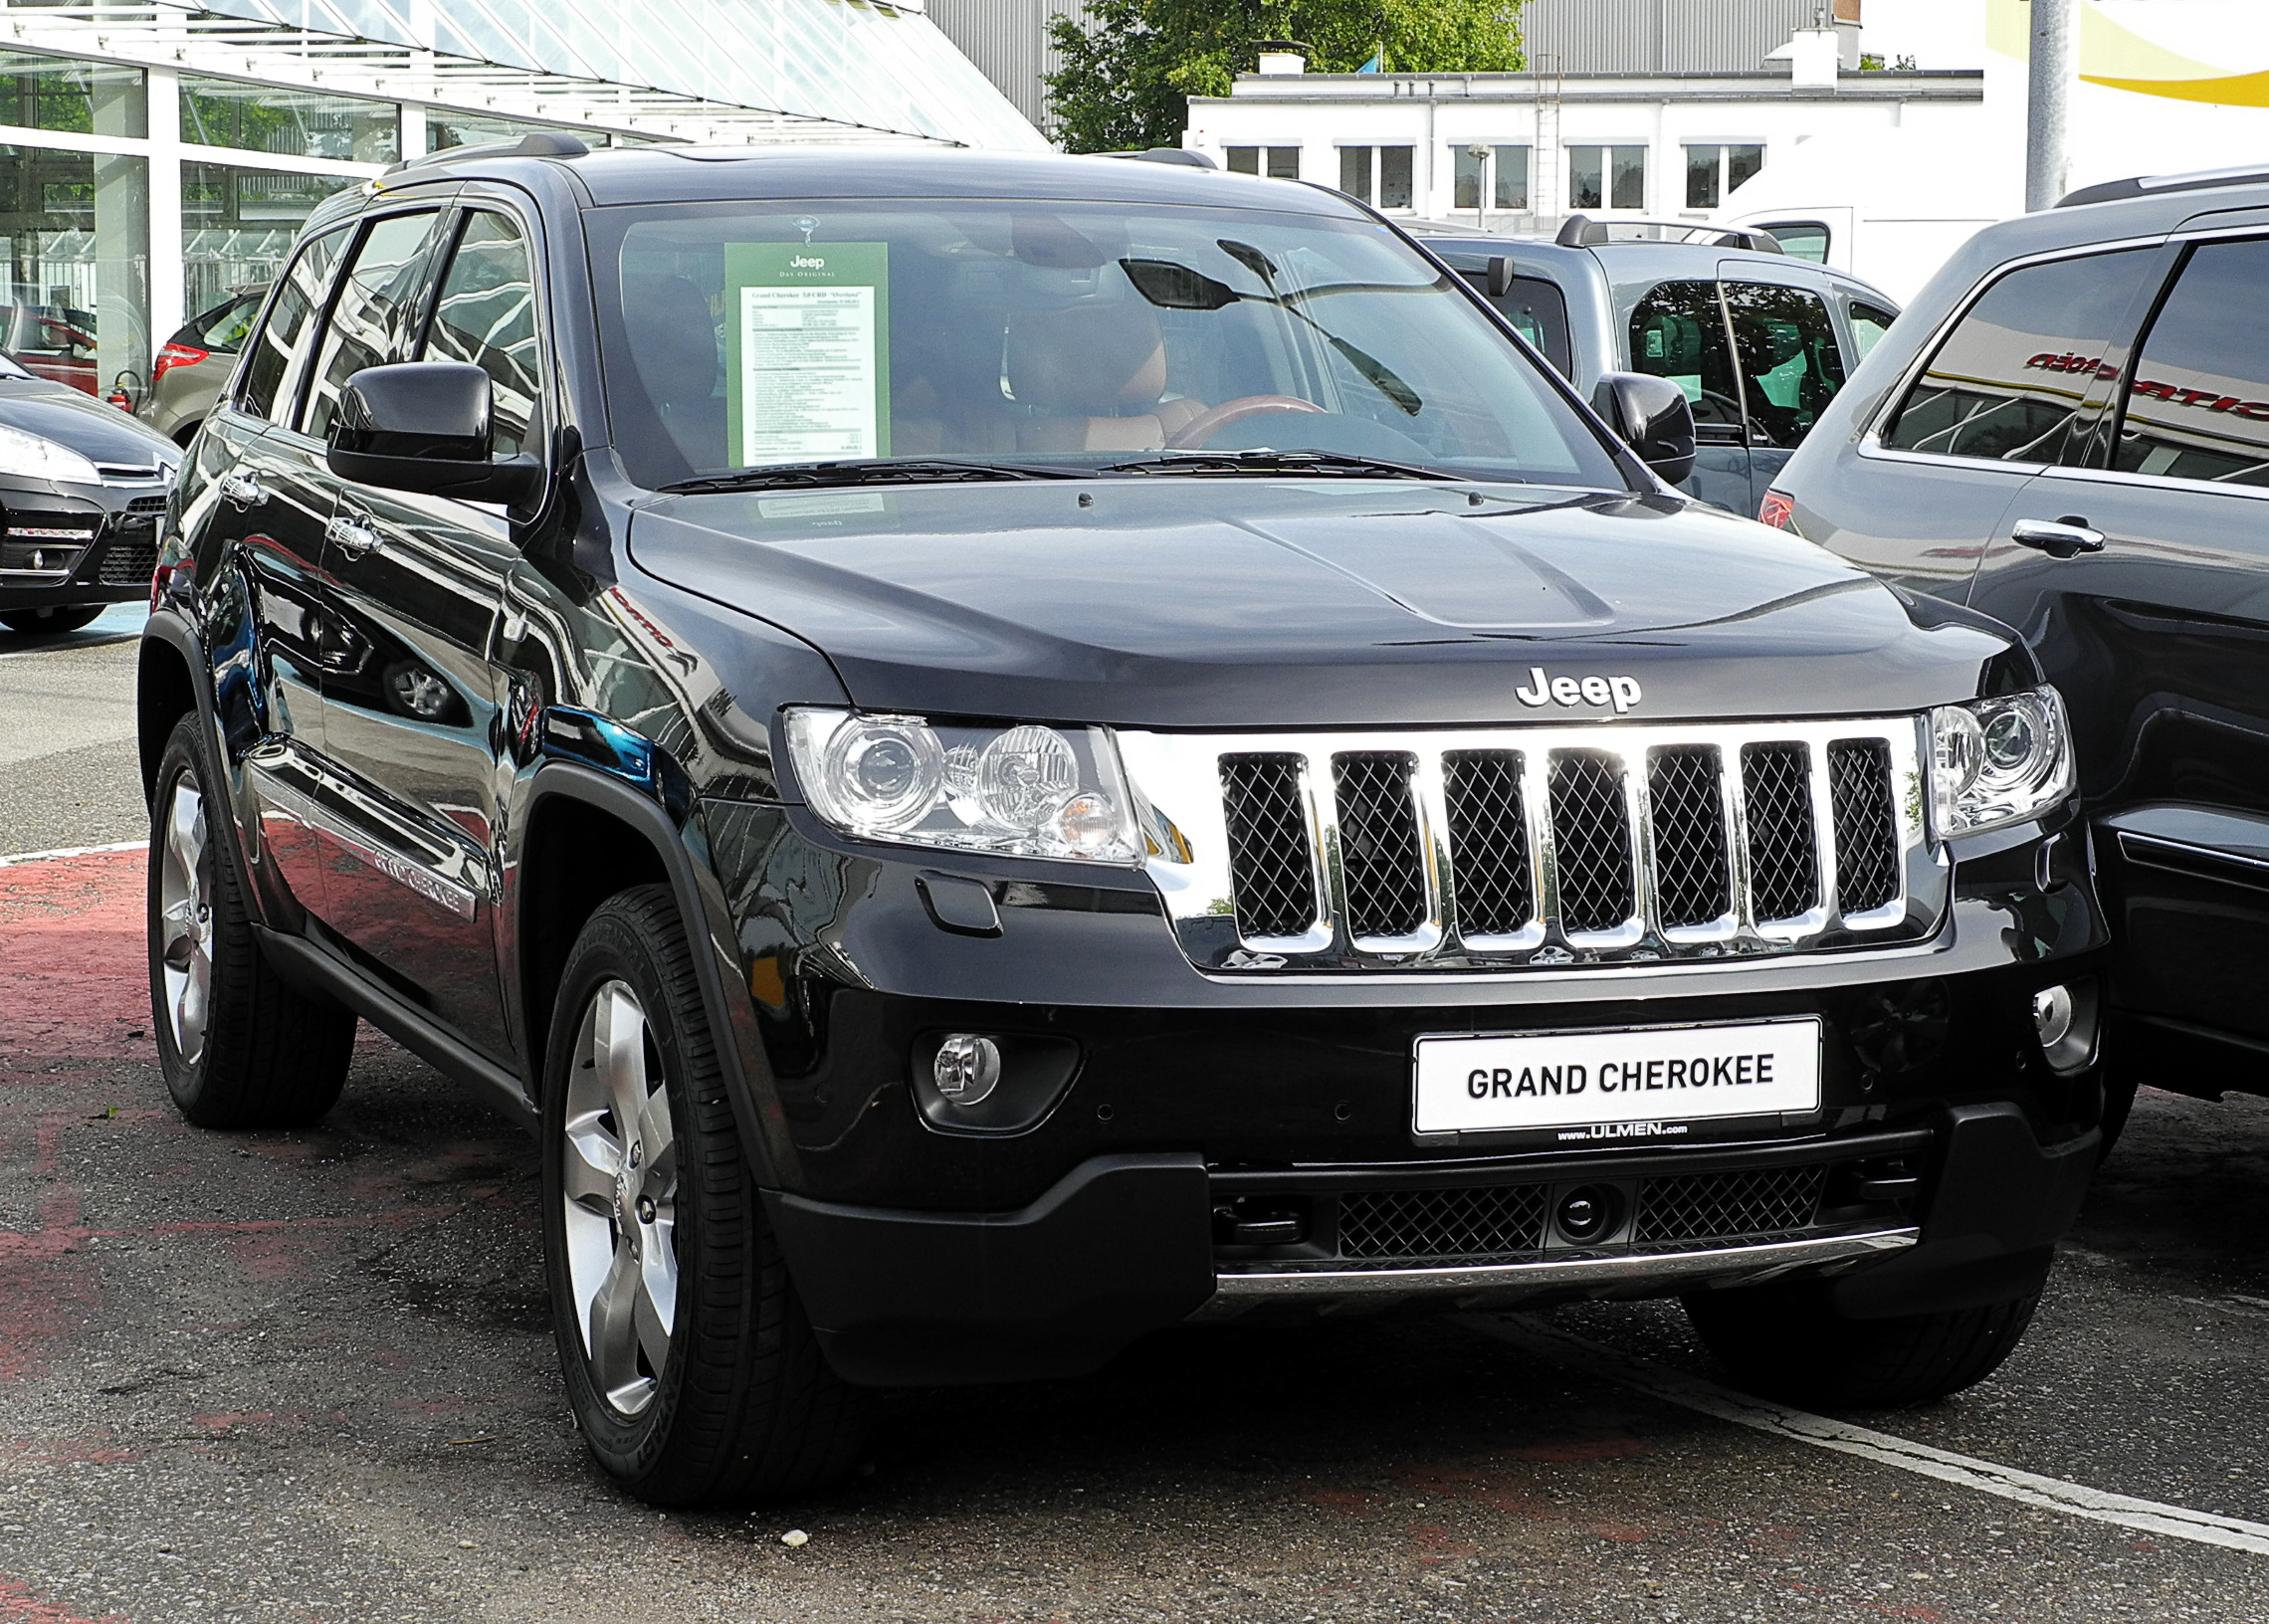 File:Jeep Grand Cherokee 3.0 CRD Overland (WK